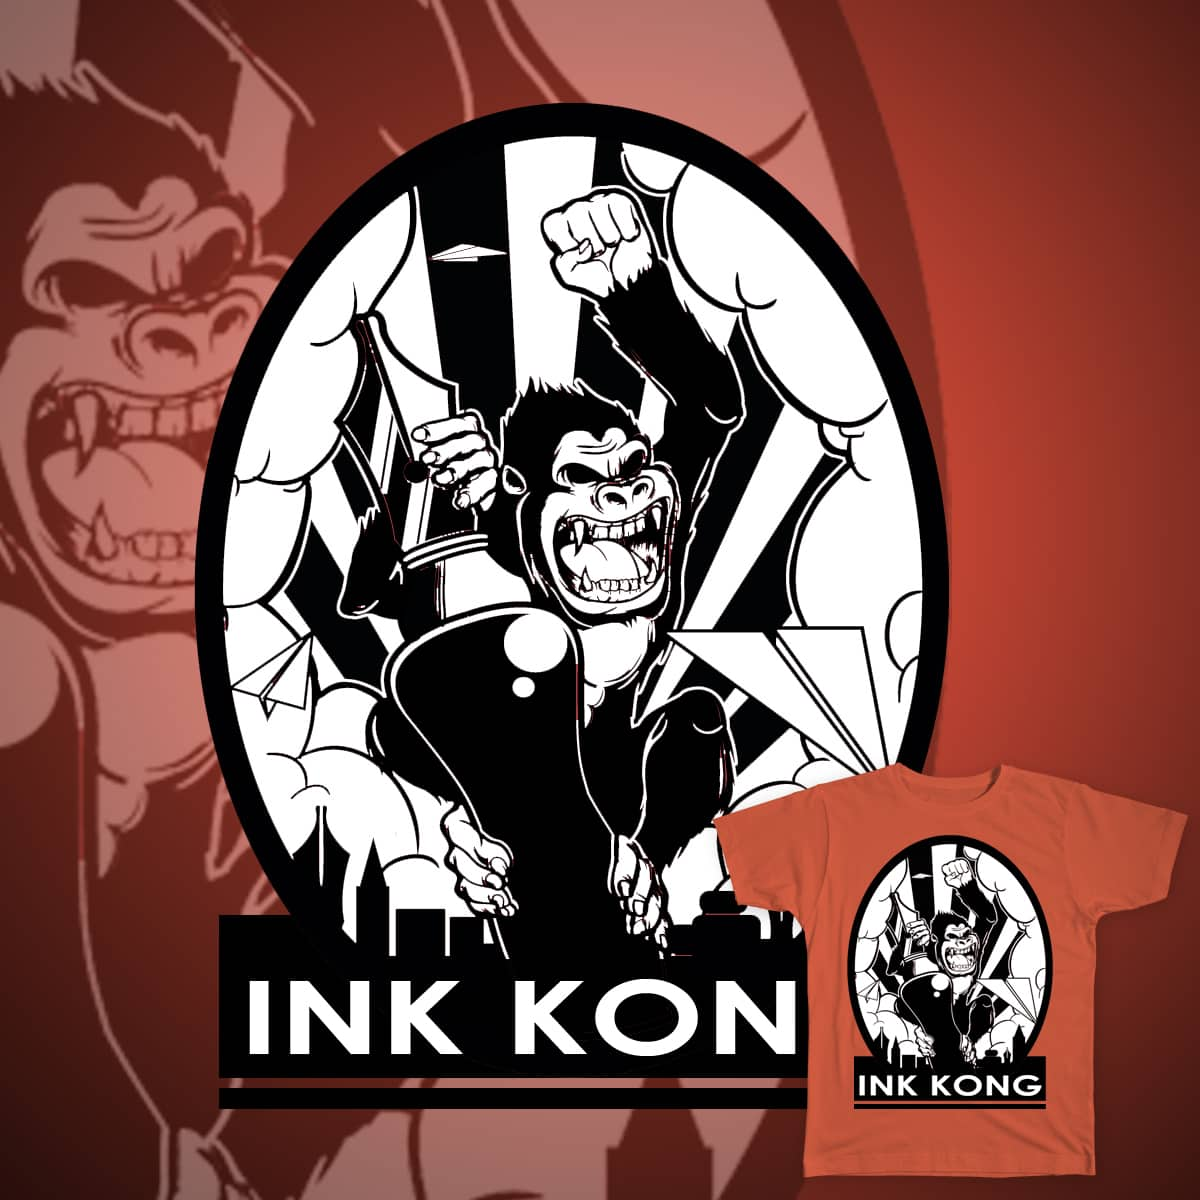 """InkKong"" by erwins.geluz on Threadless"